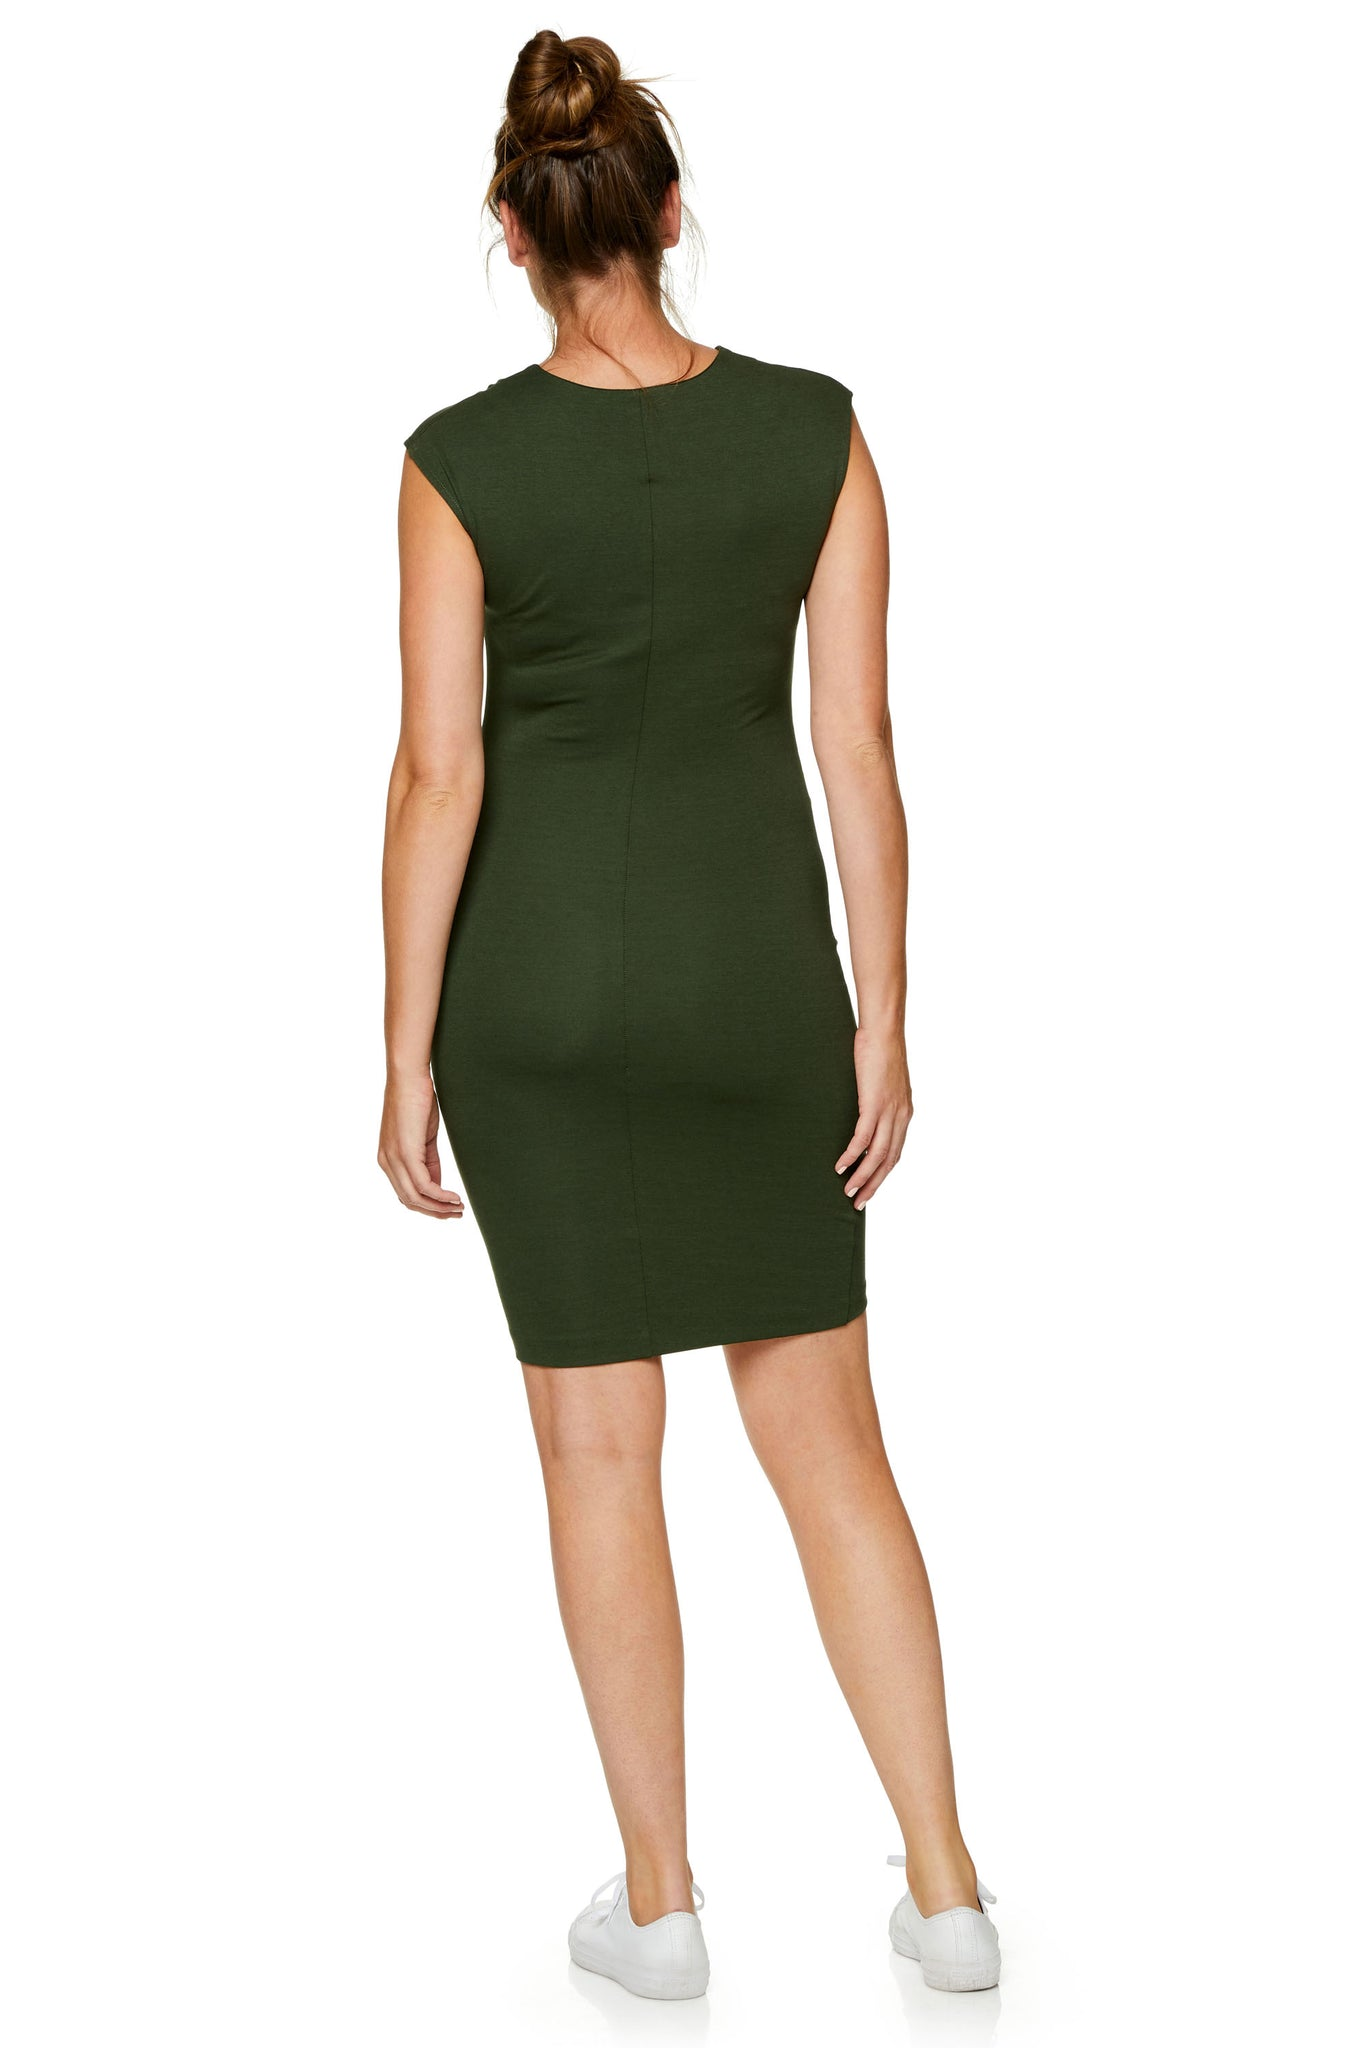 Khaki Maternity Bodycon Dress 7